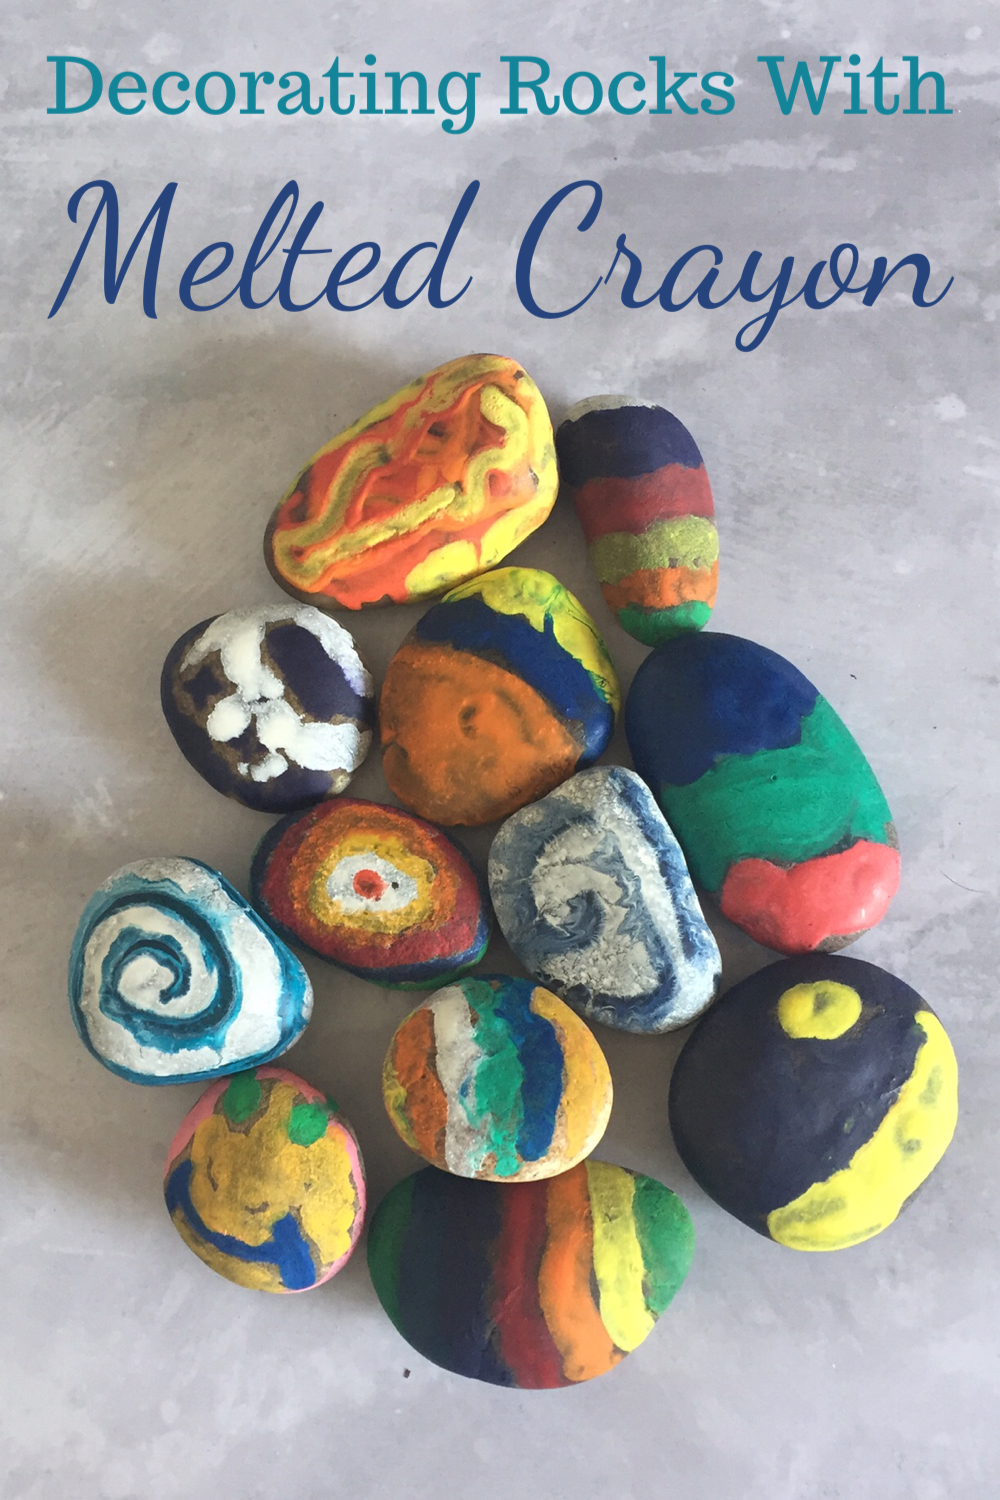 Decorating rocks with melted crayons